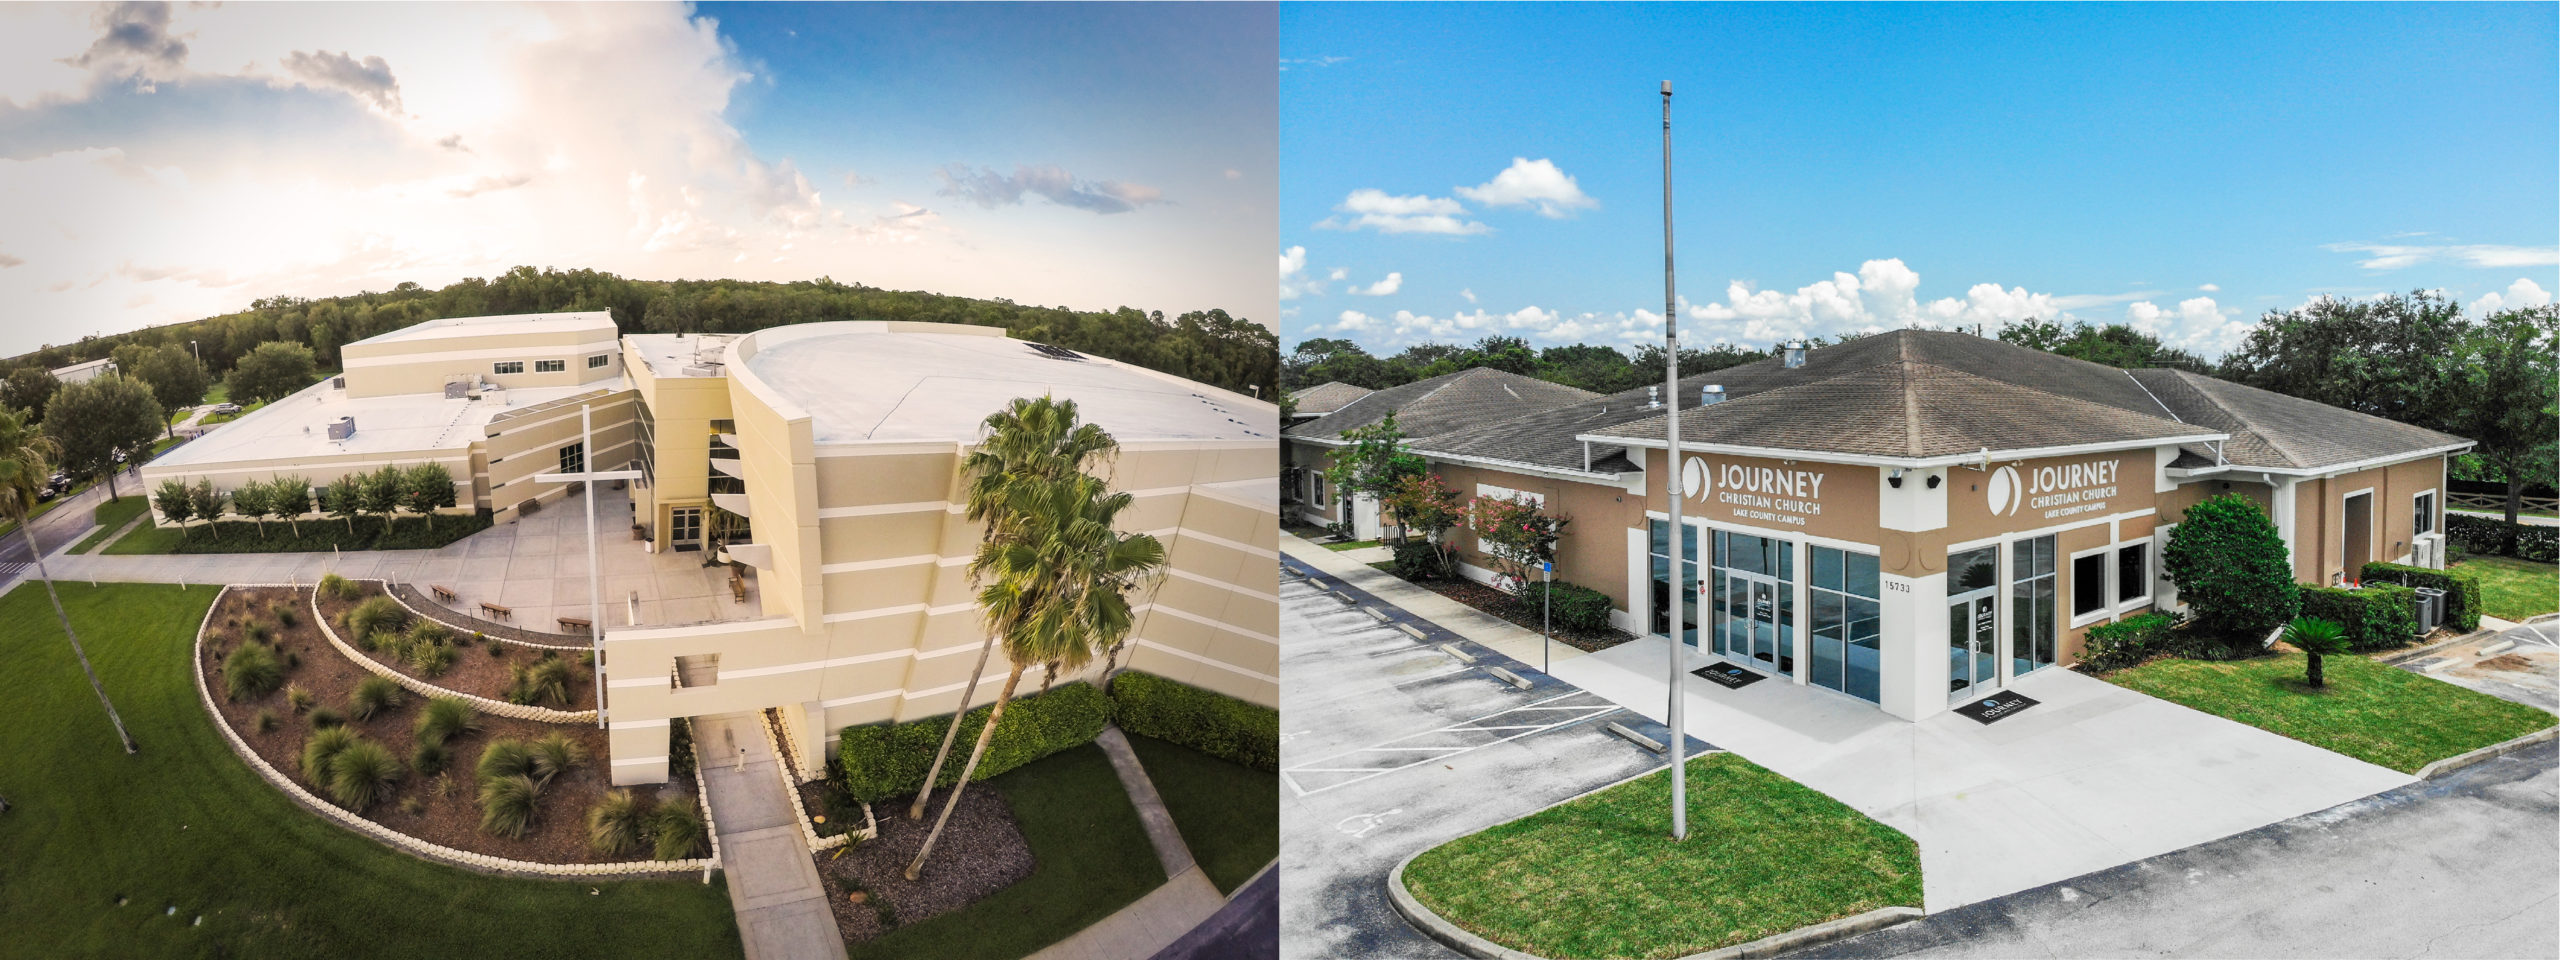 apopka and lake county campuses